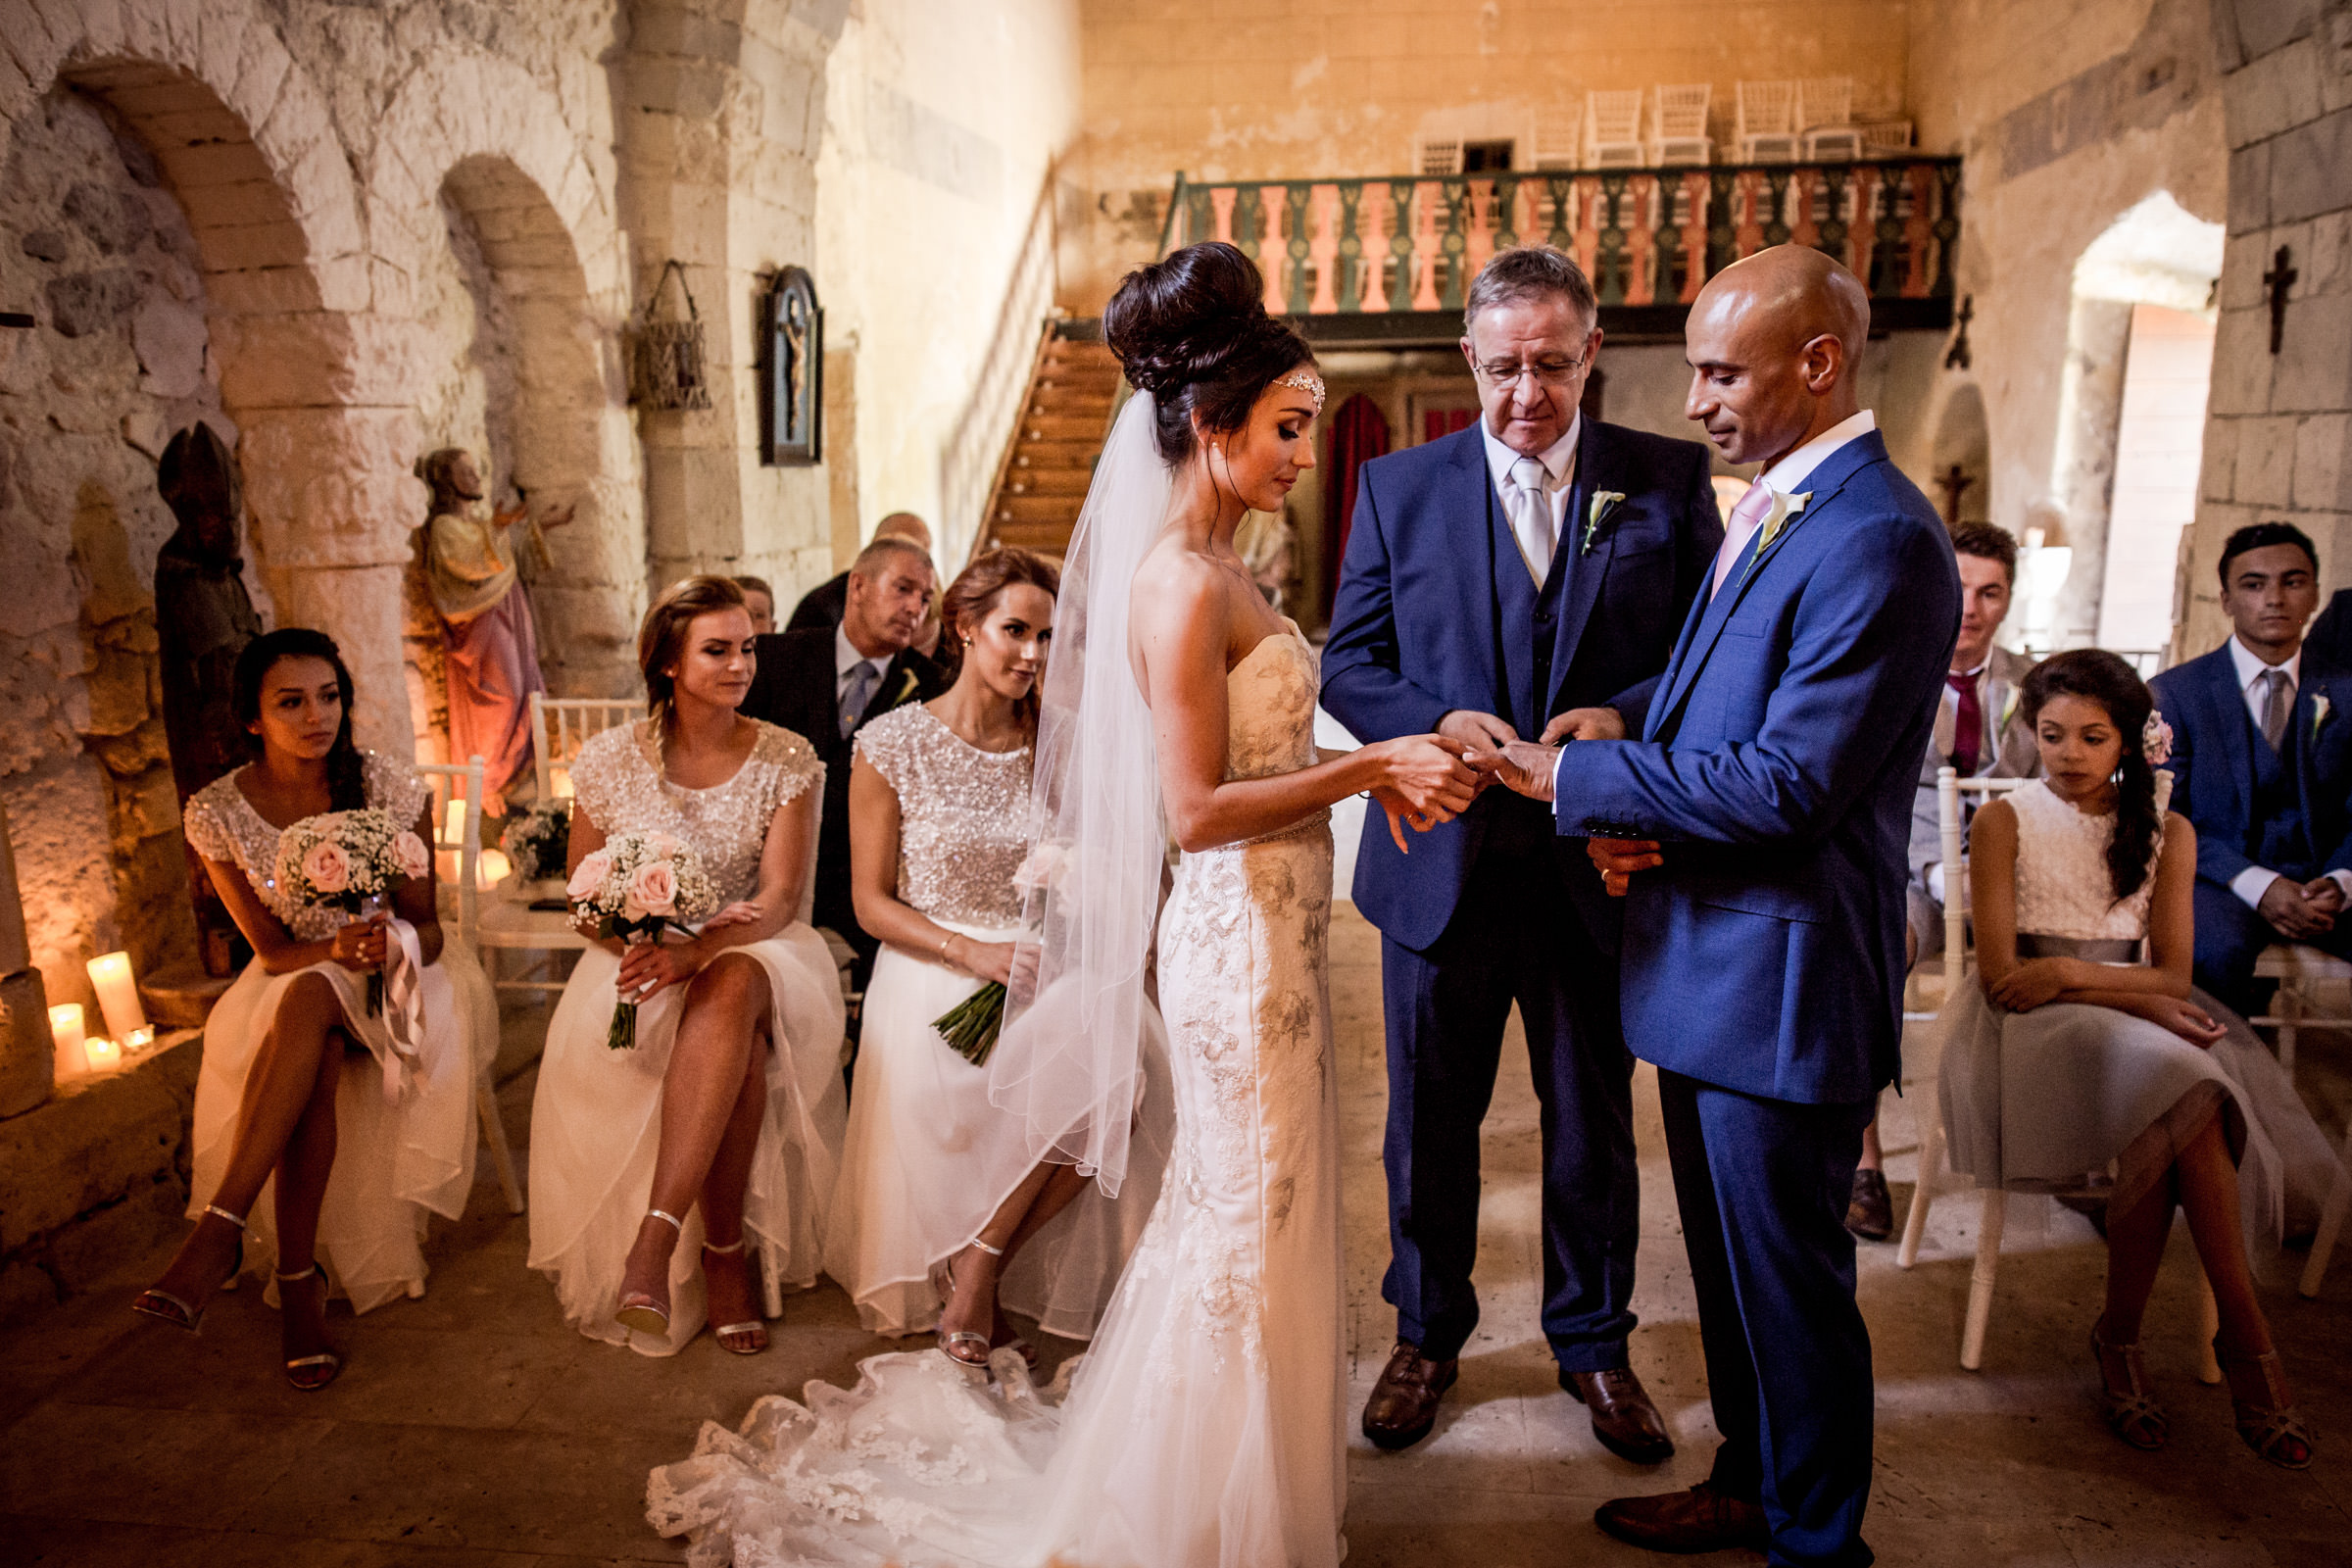 Uk Wedding photographers working at chateau de lisse in gascony 035.jpg